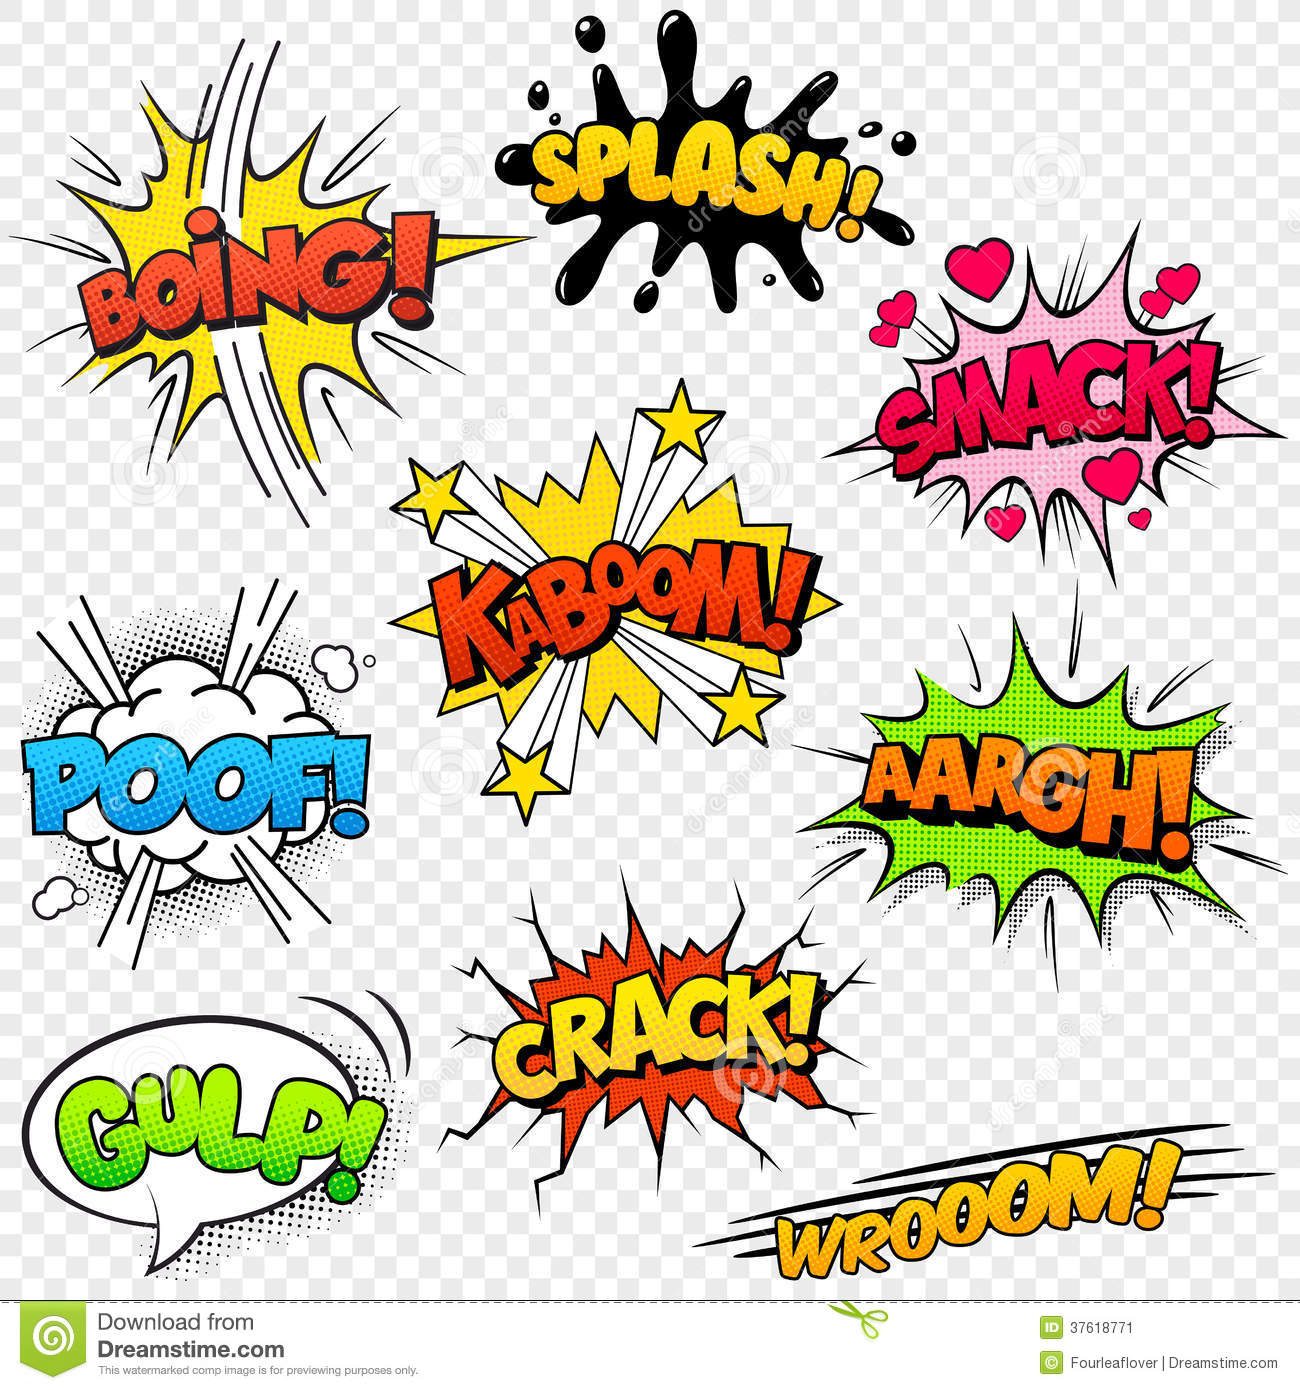 Noise clipart silent Capsules Comic Image: Sound Effects